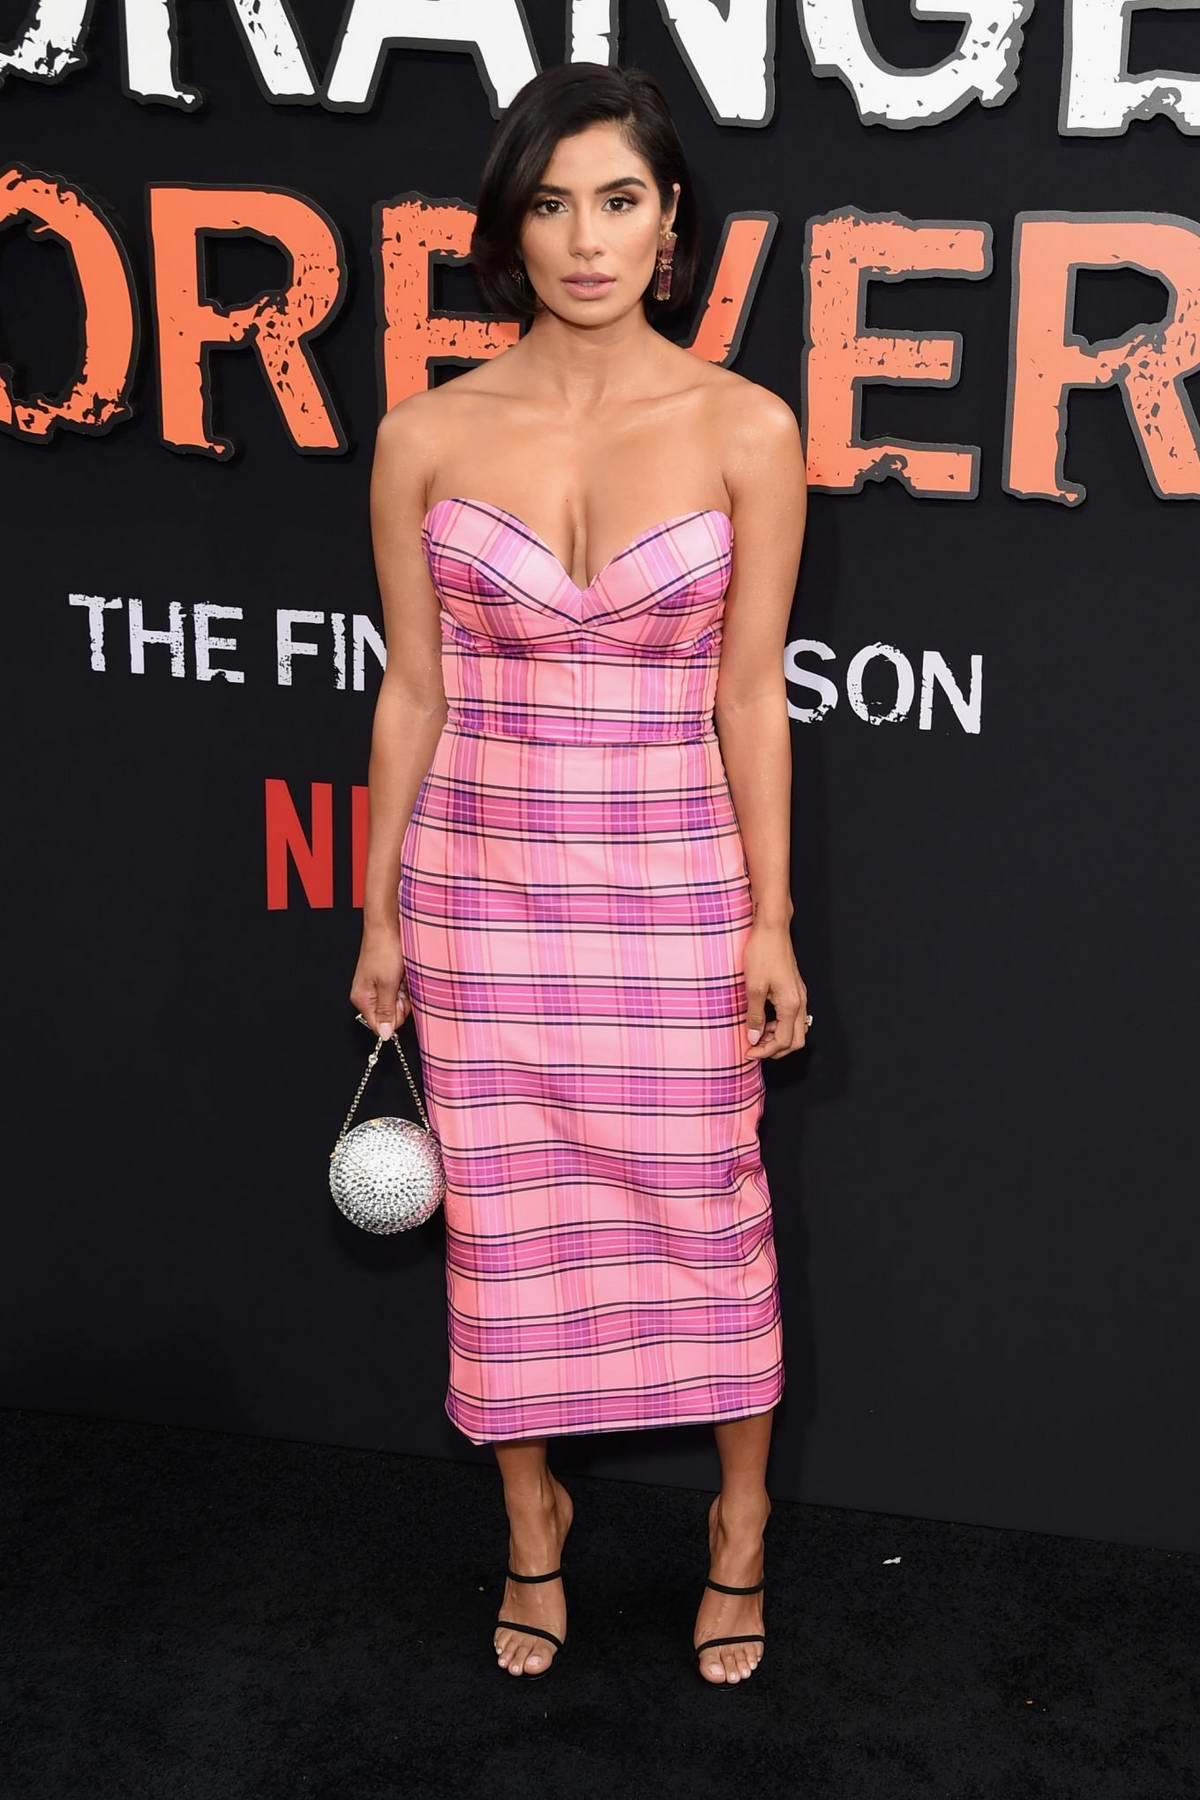 Diane Guerrero attends the 'Orange Is The New Black' Final Season World Premiere at Alice Tully Hall, Lincoln Center in New York City